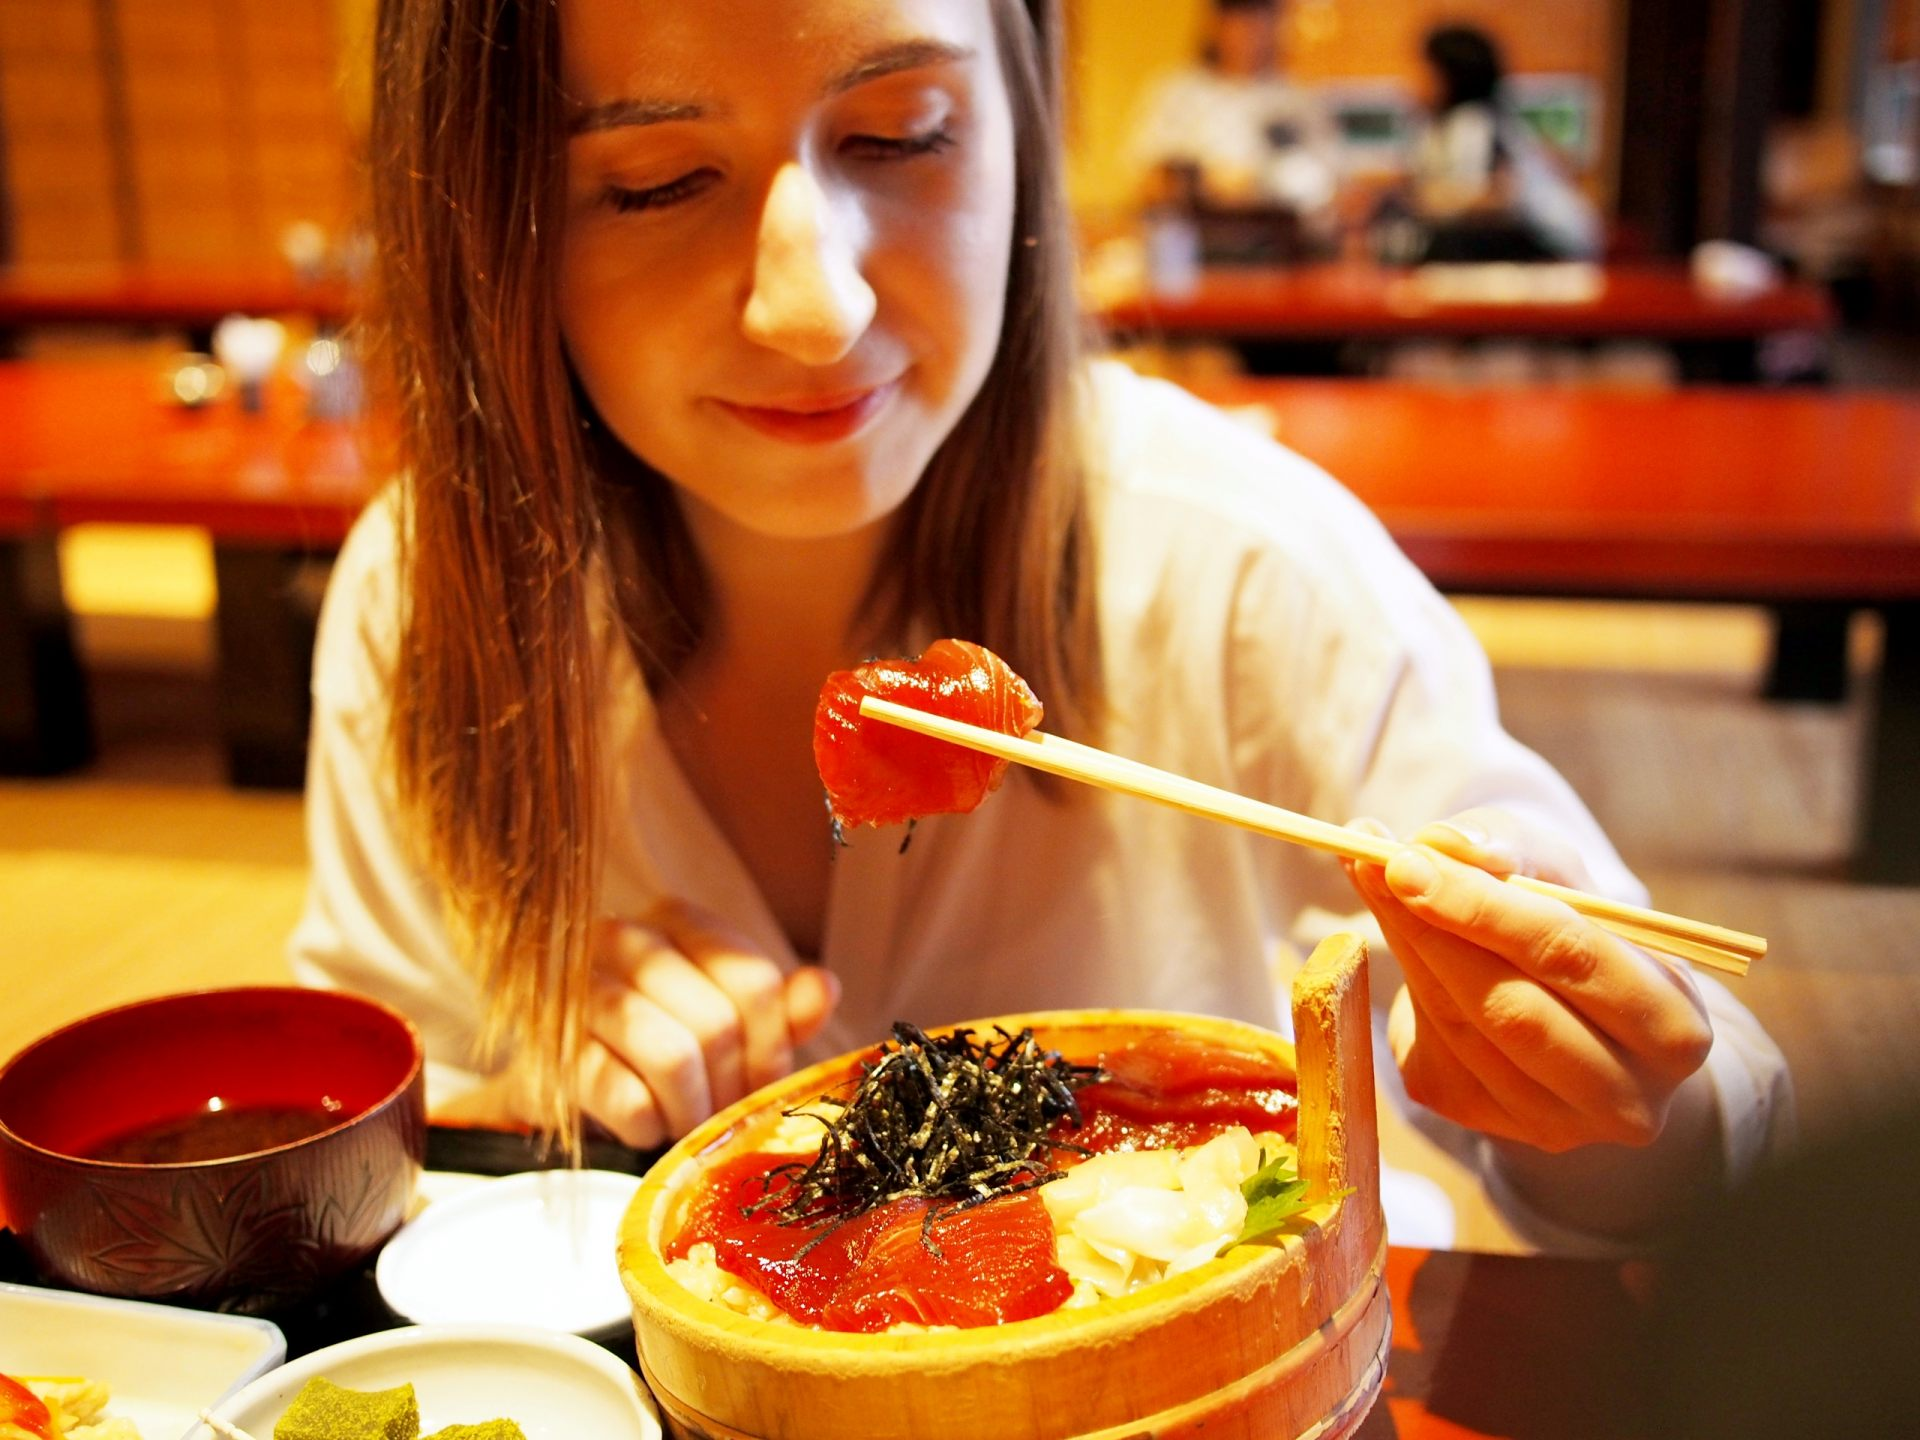 """Nigiri sushi is great, but """"tekone sushi"""" is delicious too!"""